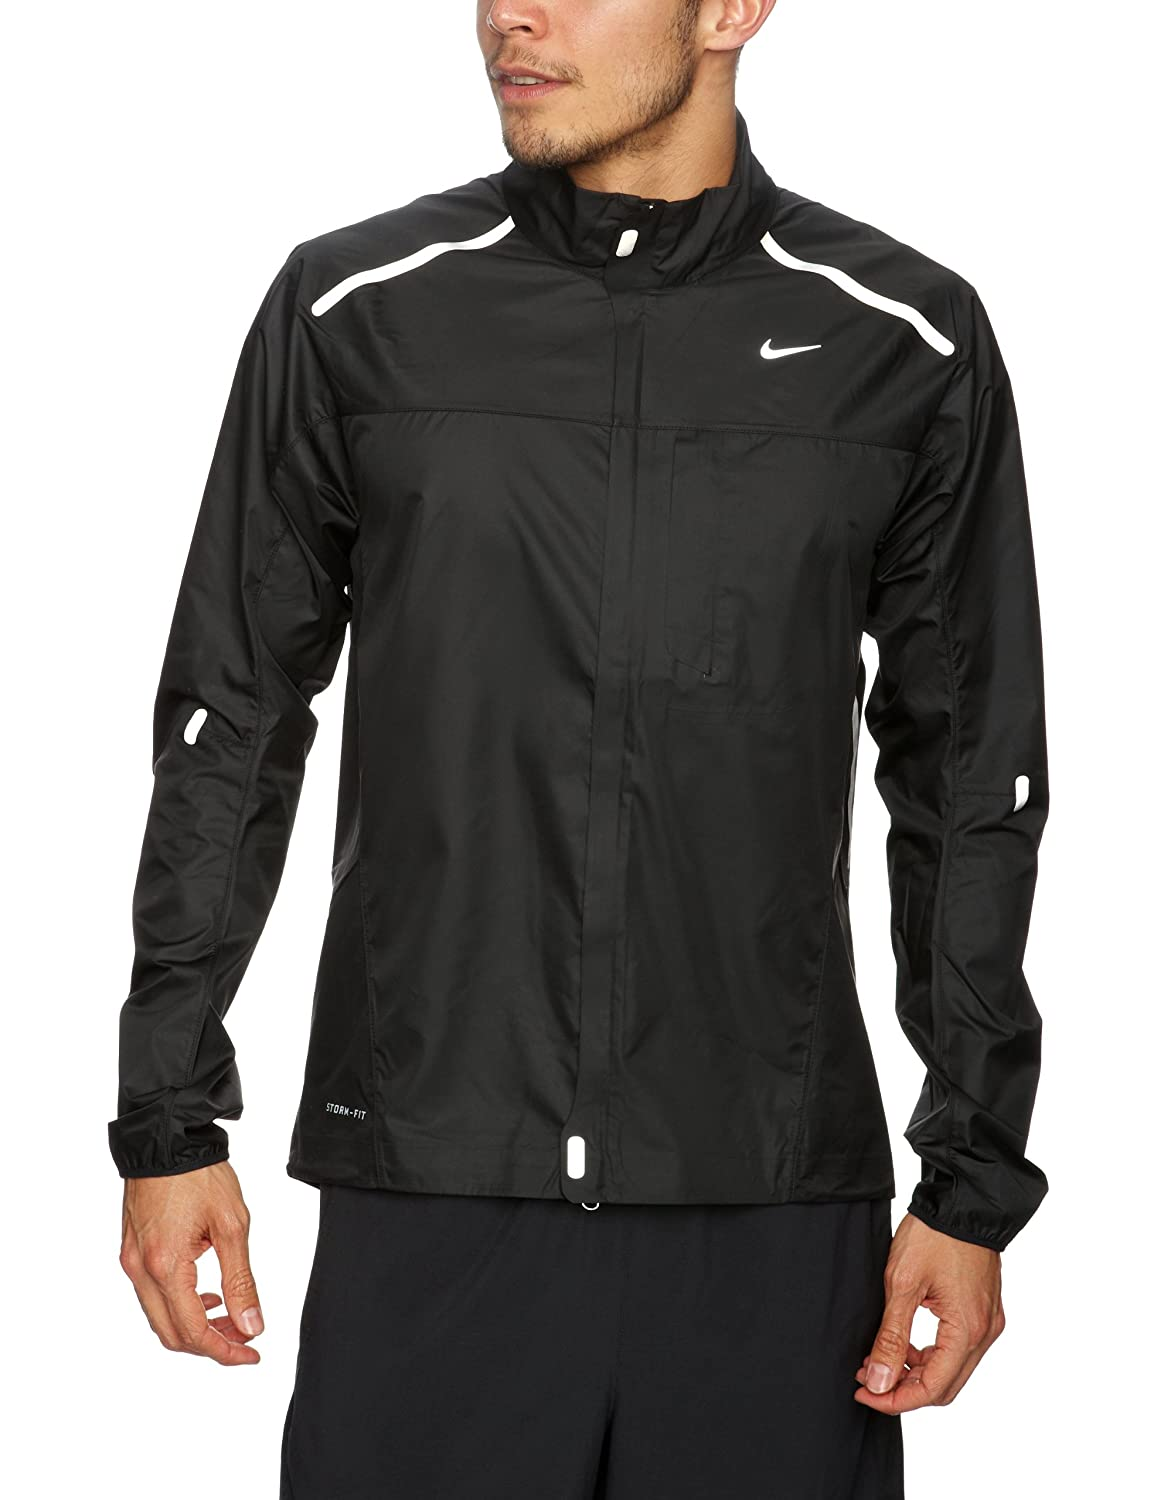 bfb5aa9f1add Amazon.com  Nike Storm Fly Lightweight Running Jacket - XX Large Black   Clothing